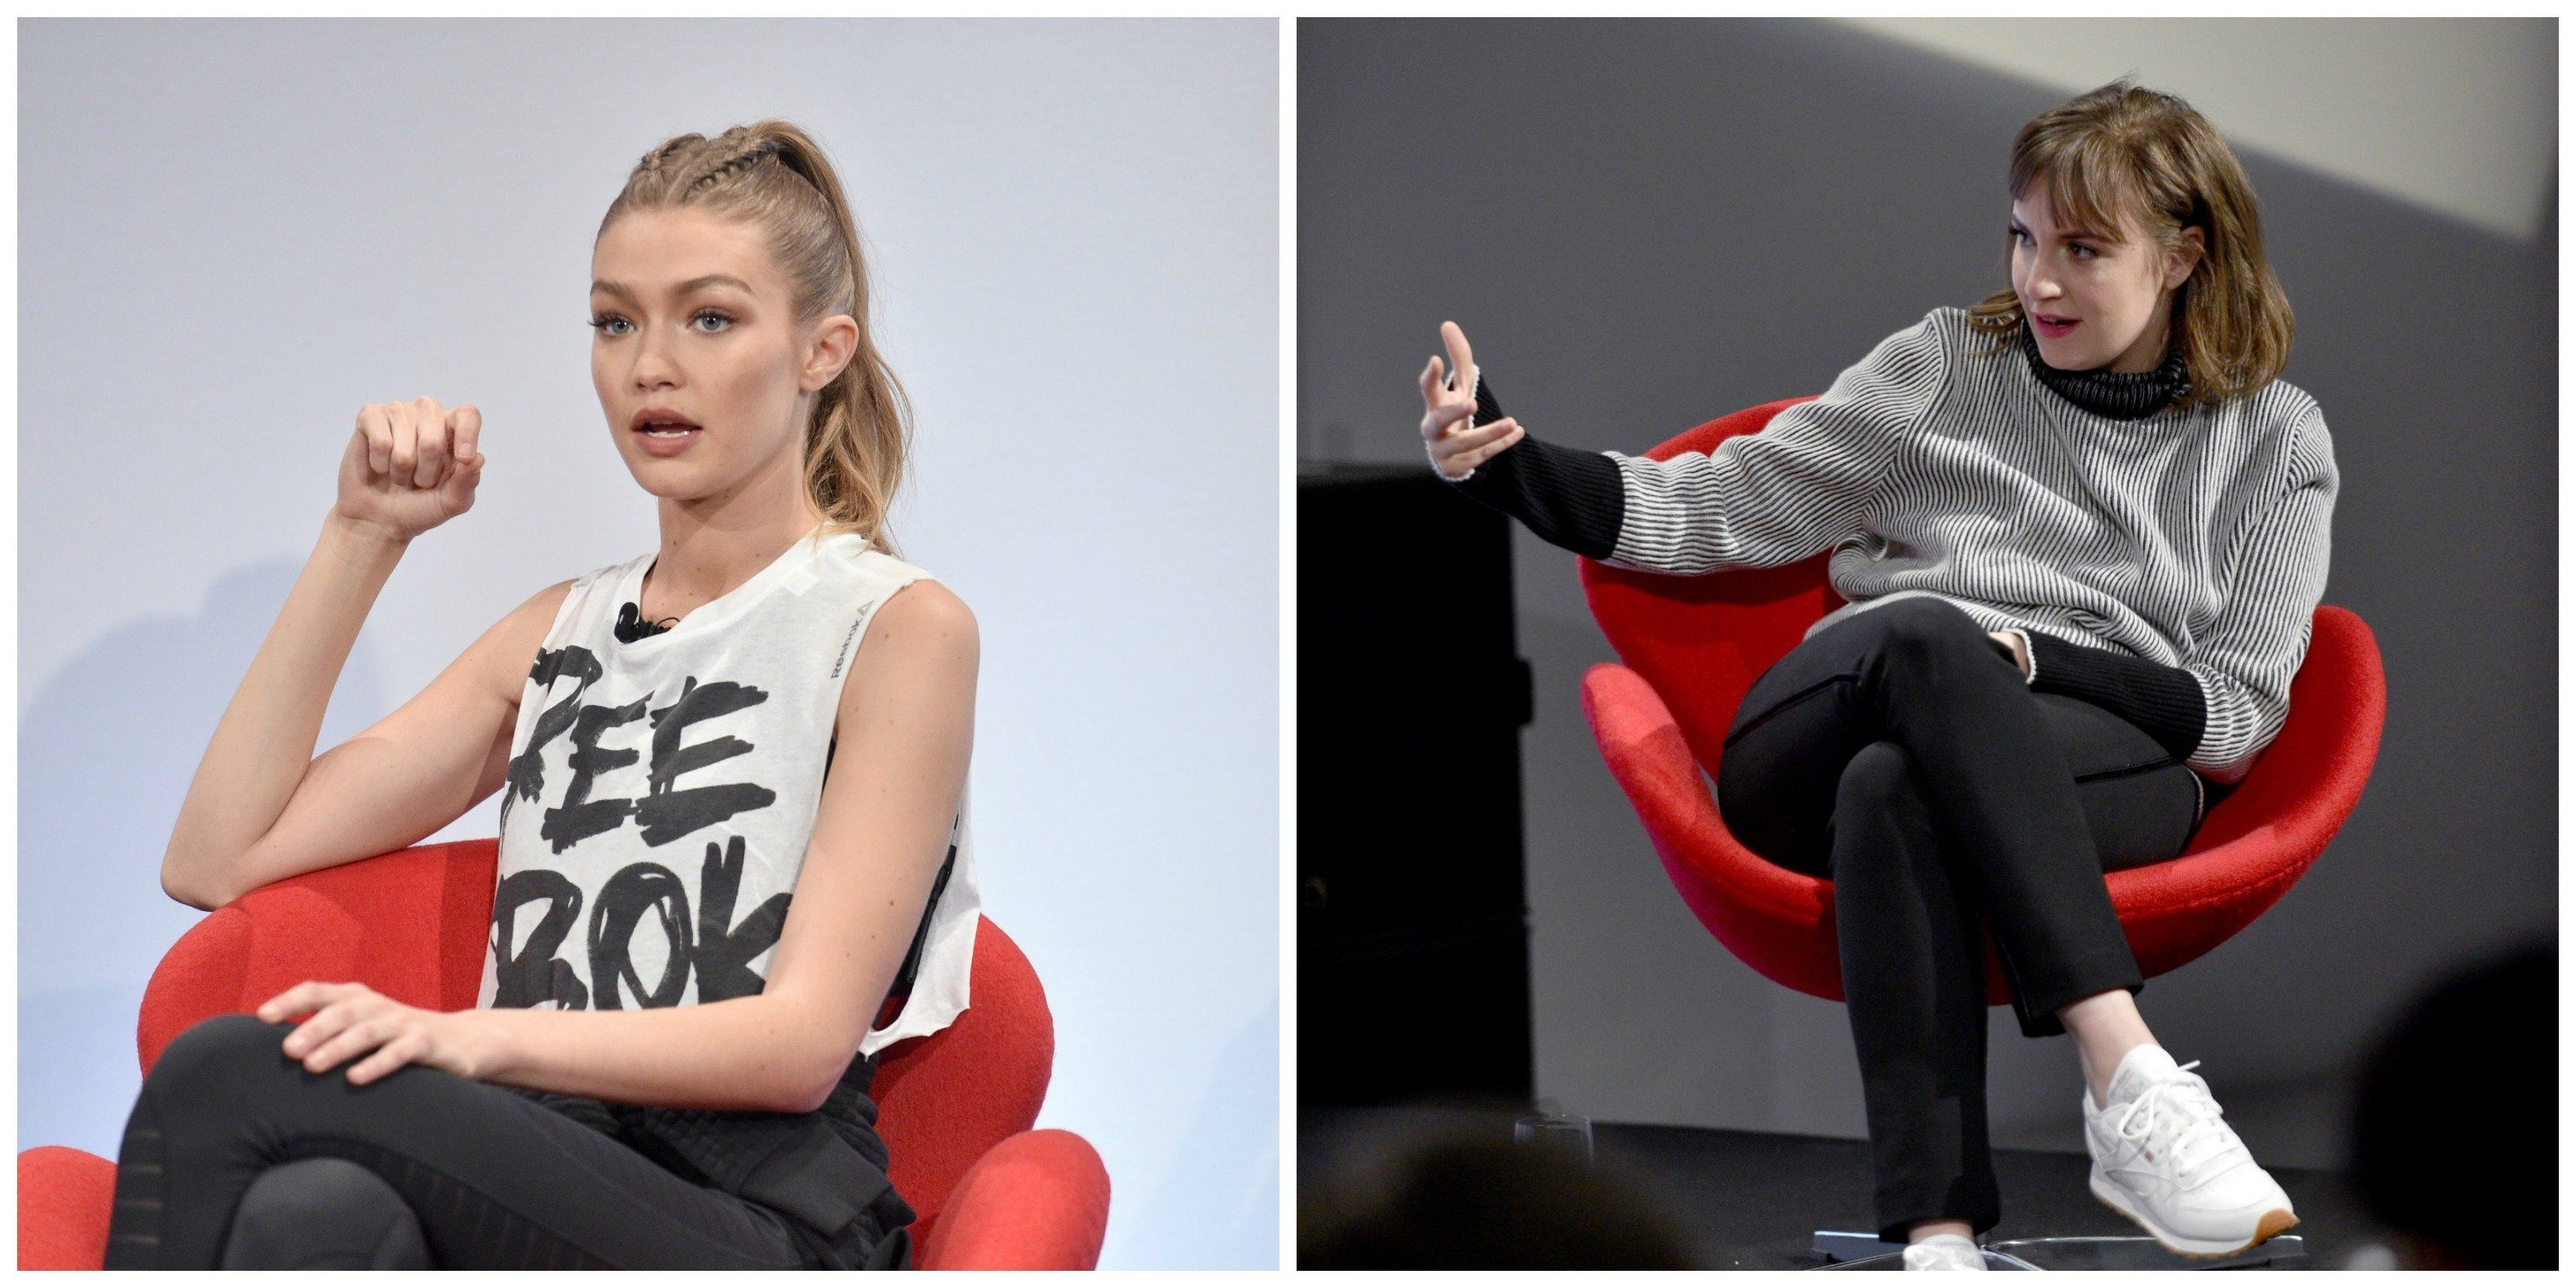 Allow Gigi Hadid and Lena Dunham offer some real talk on mental health.